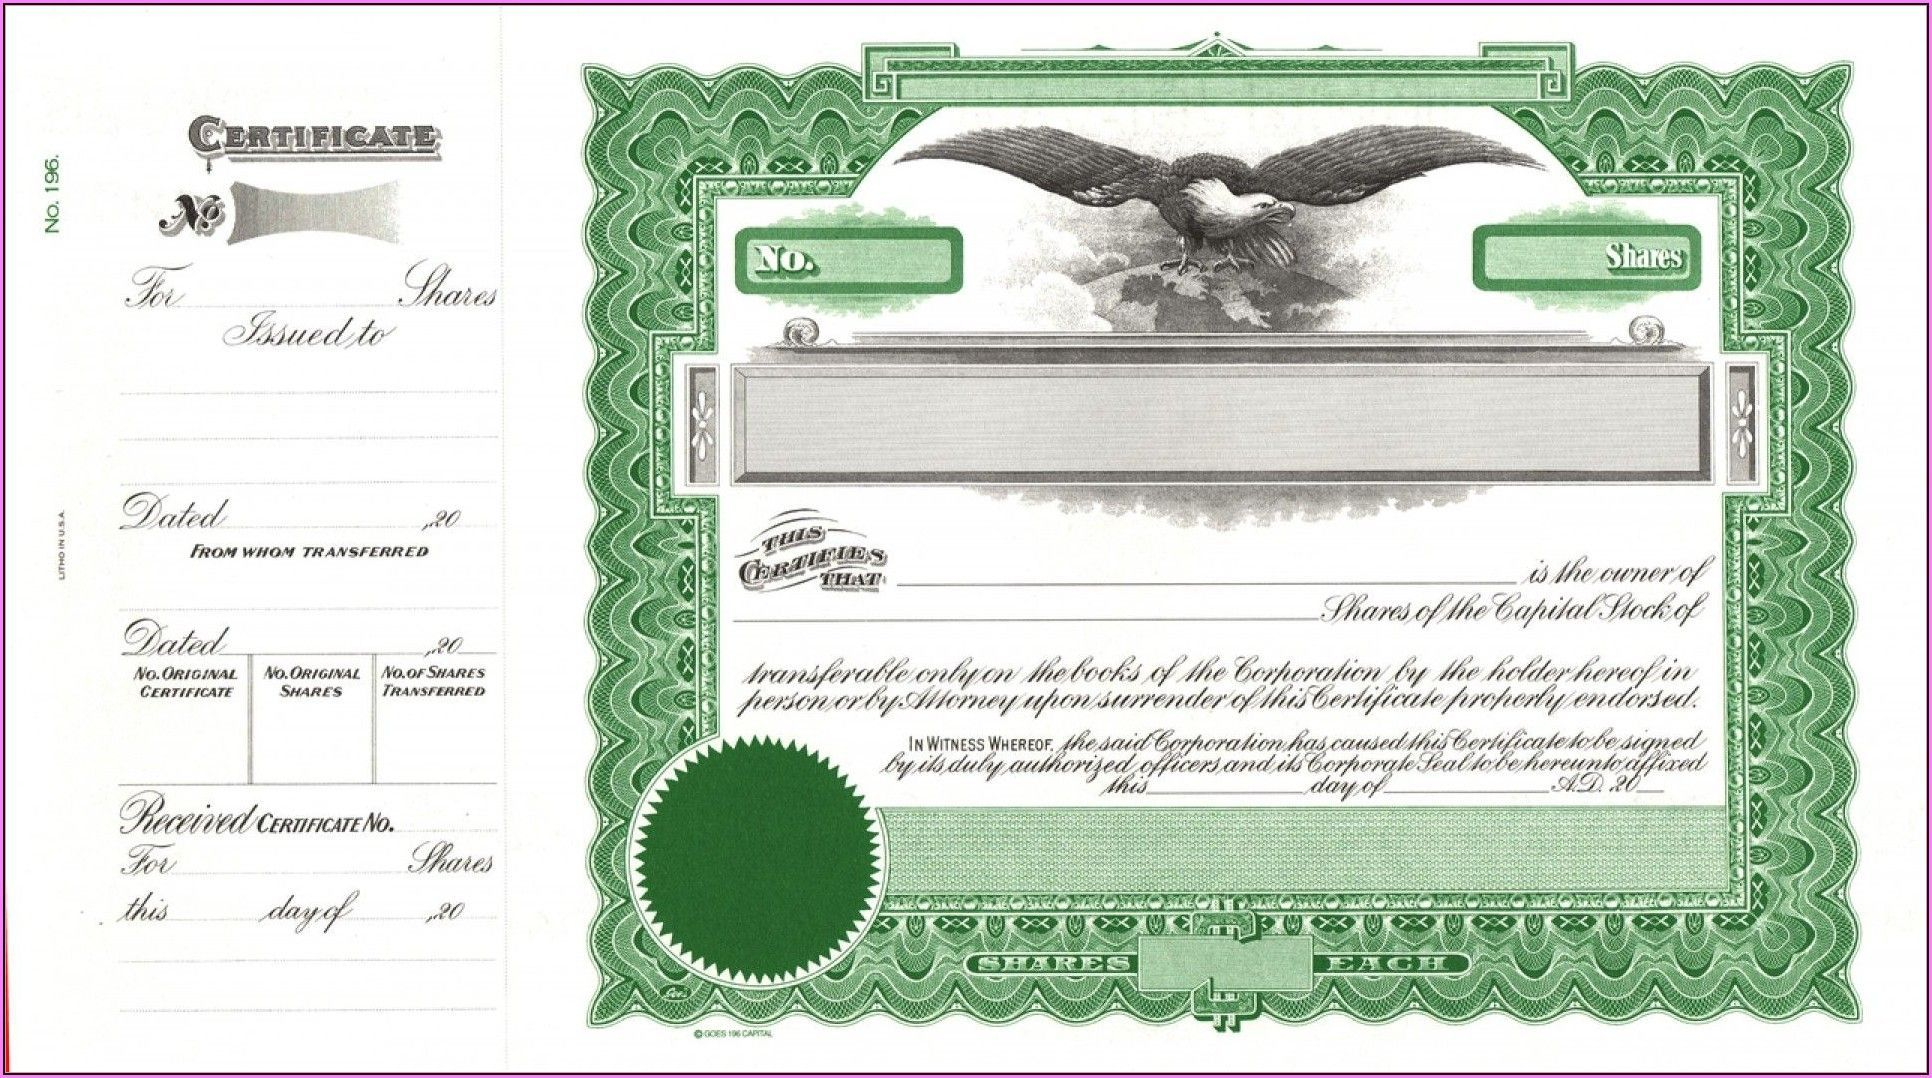 003 Remarkable Stock Certificate Template Word Highest Clarity  MicrosoftFull